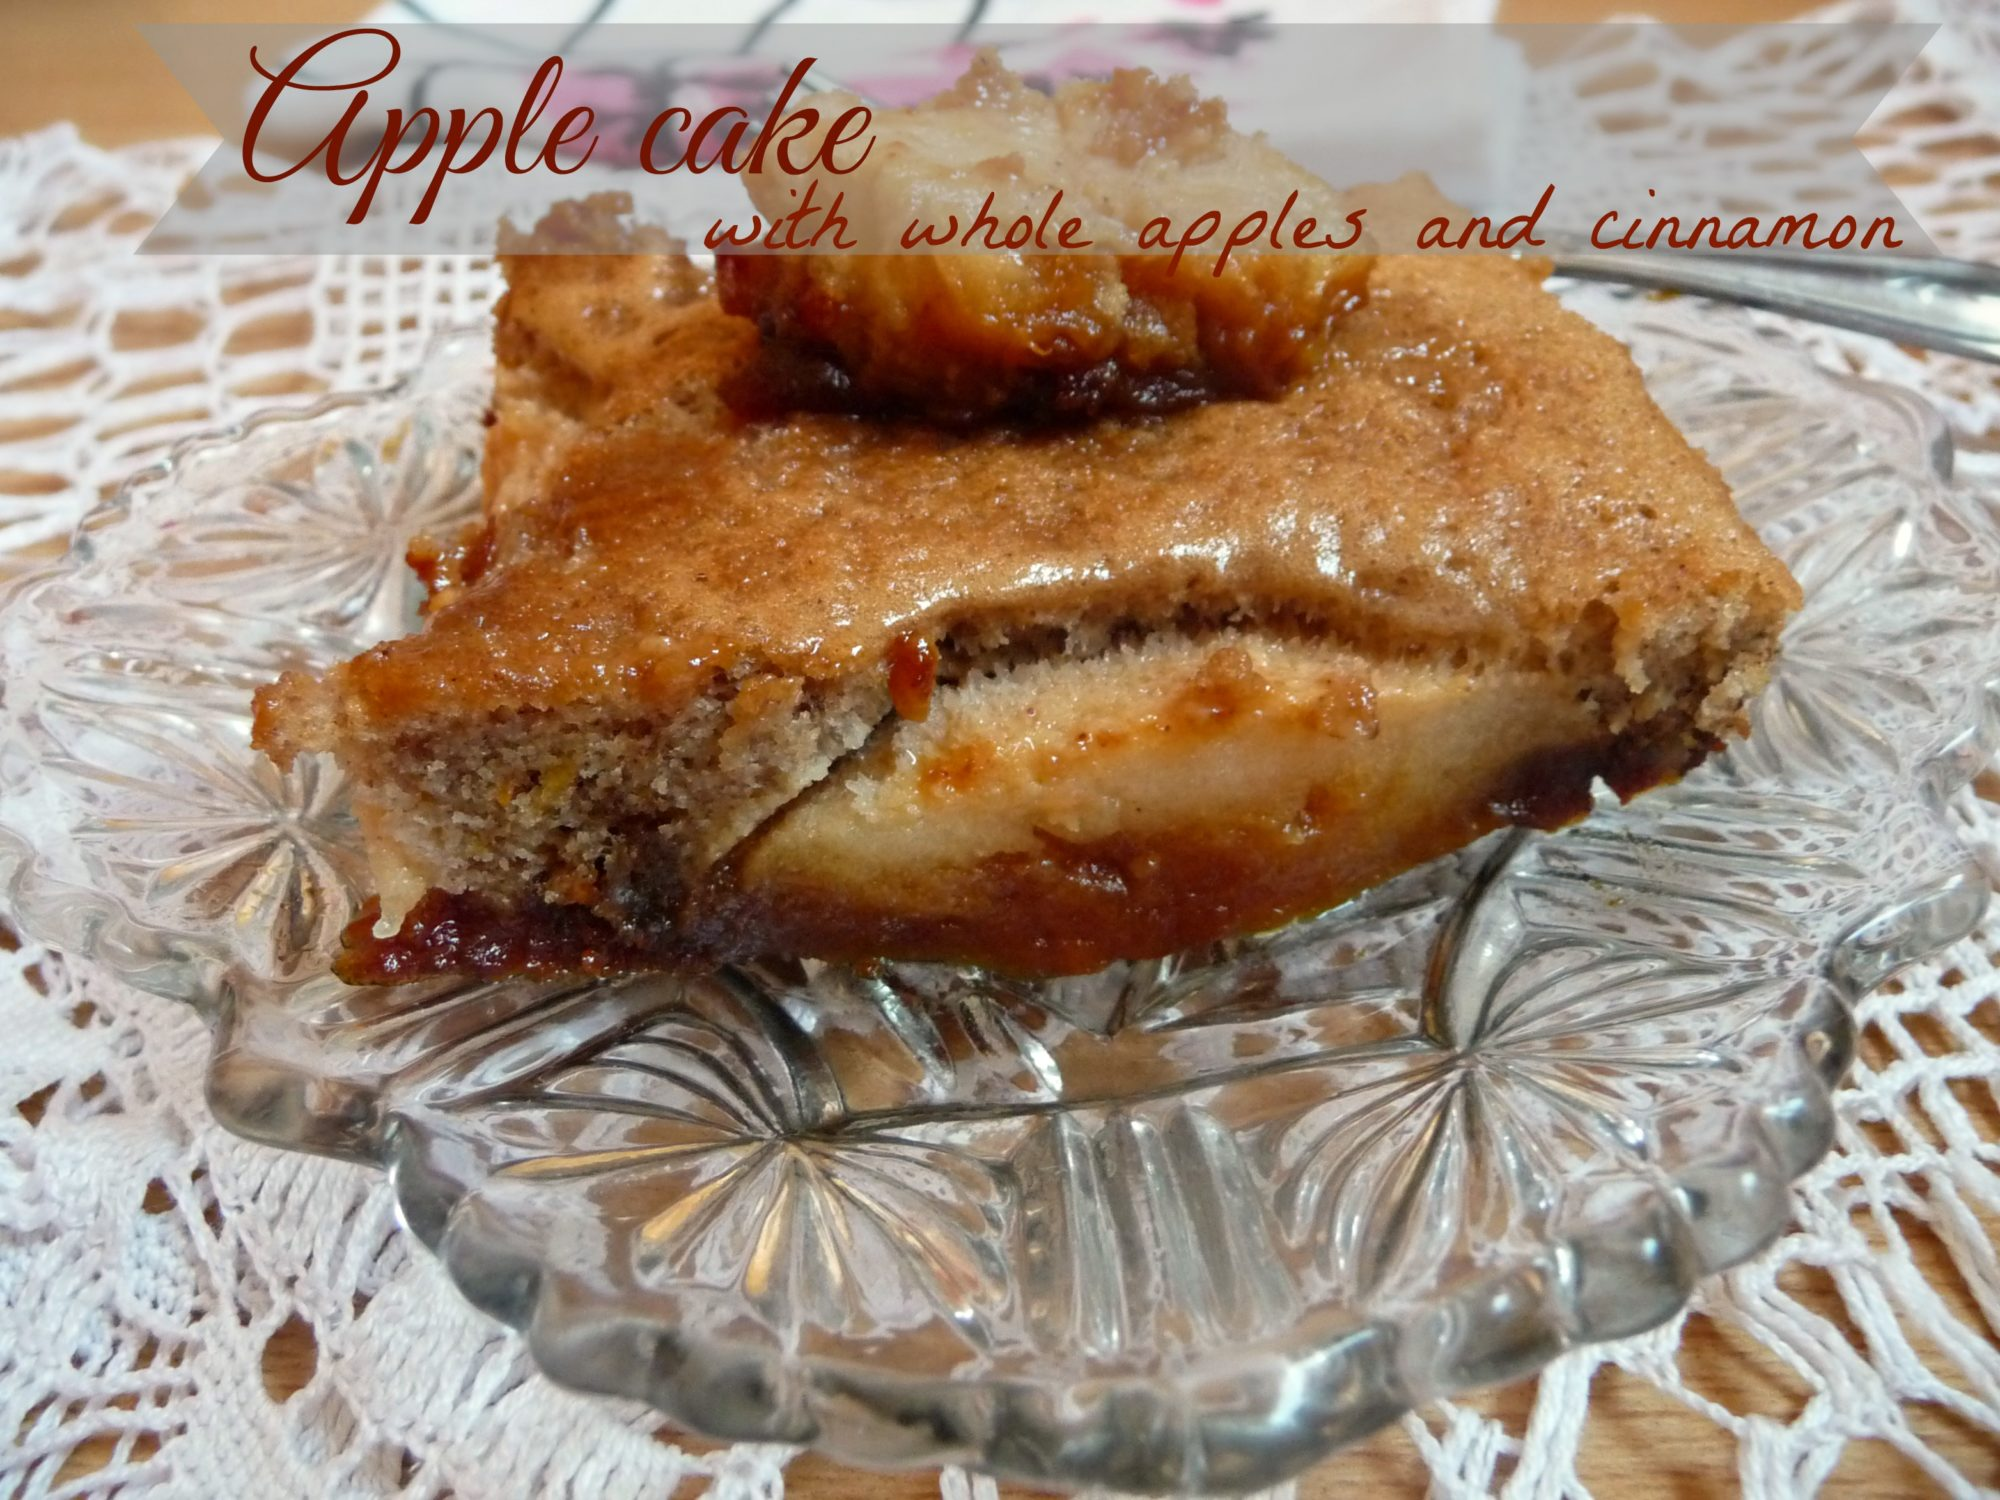 Apple cake with whole apples